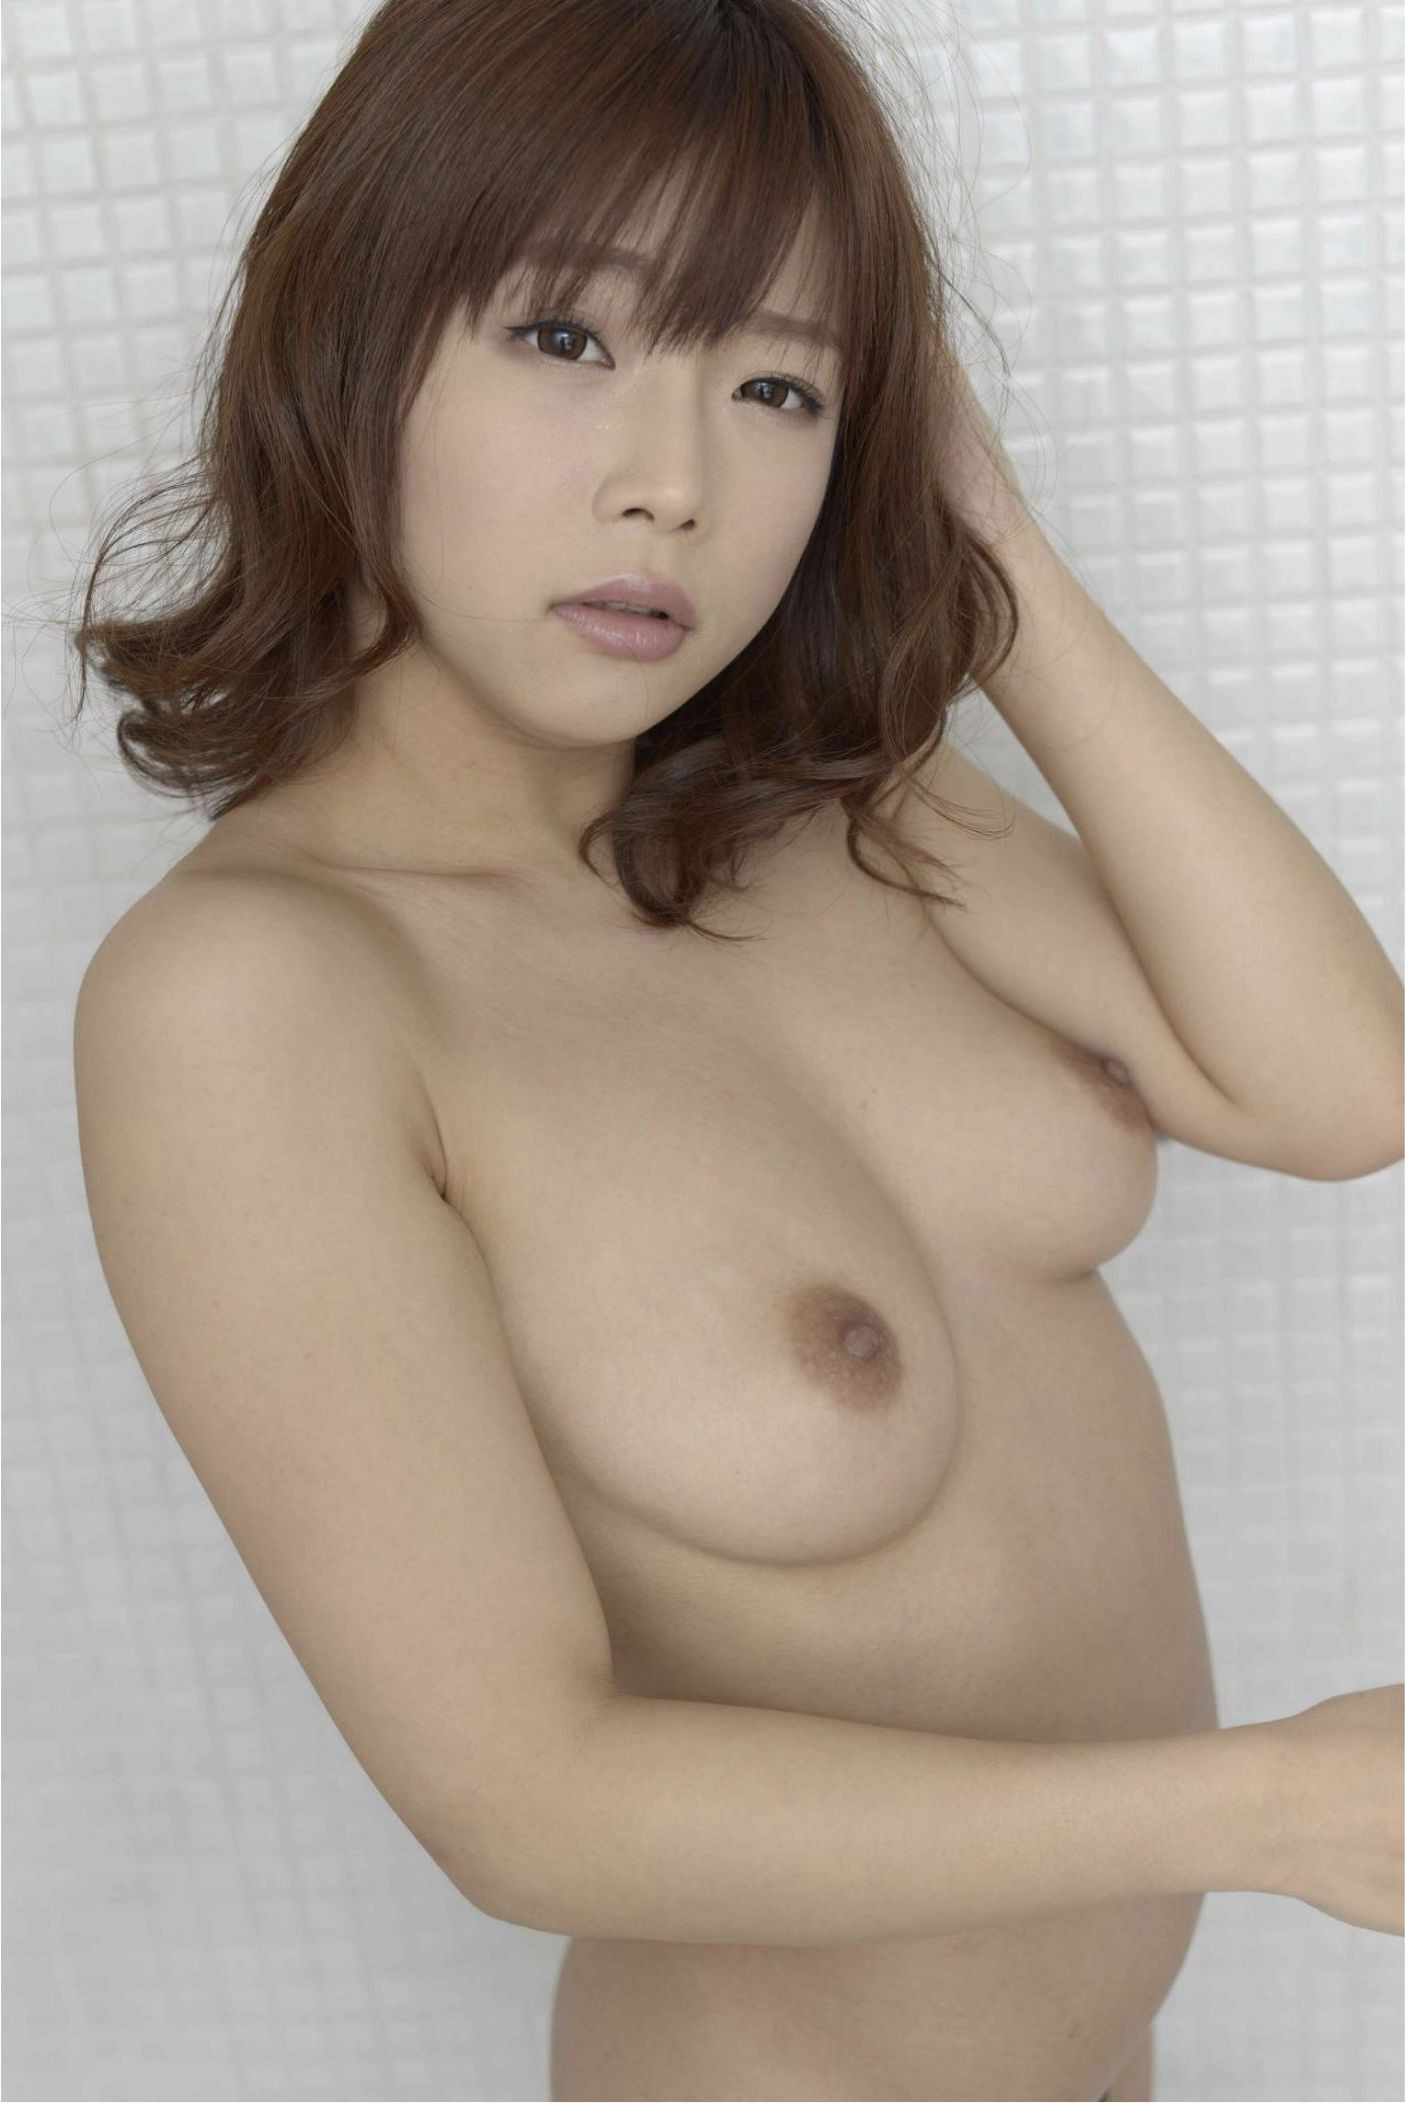 SOFT ON DEMAND GRAVURE COLLECTION 紗倉まな02 photo 064